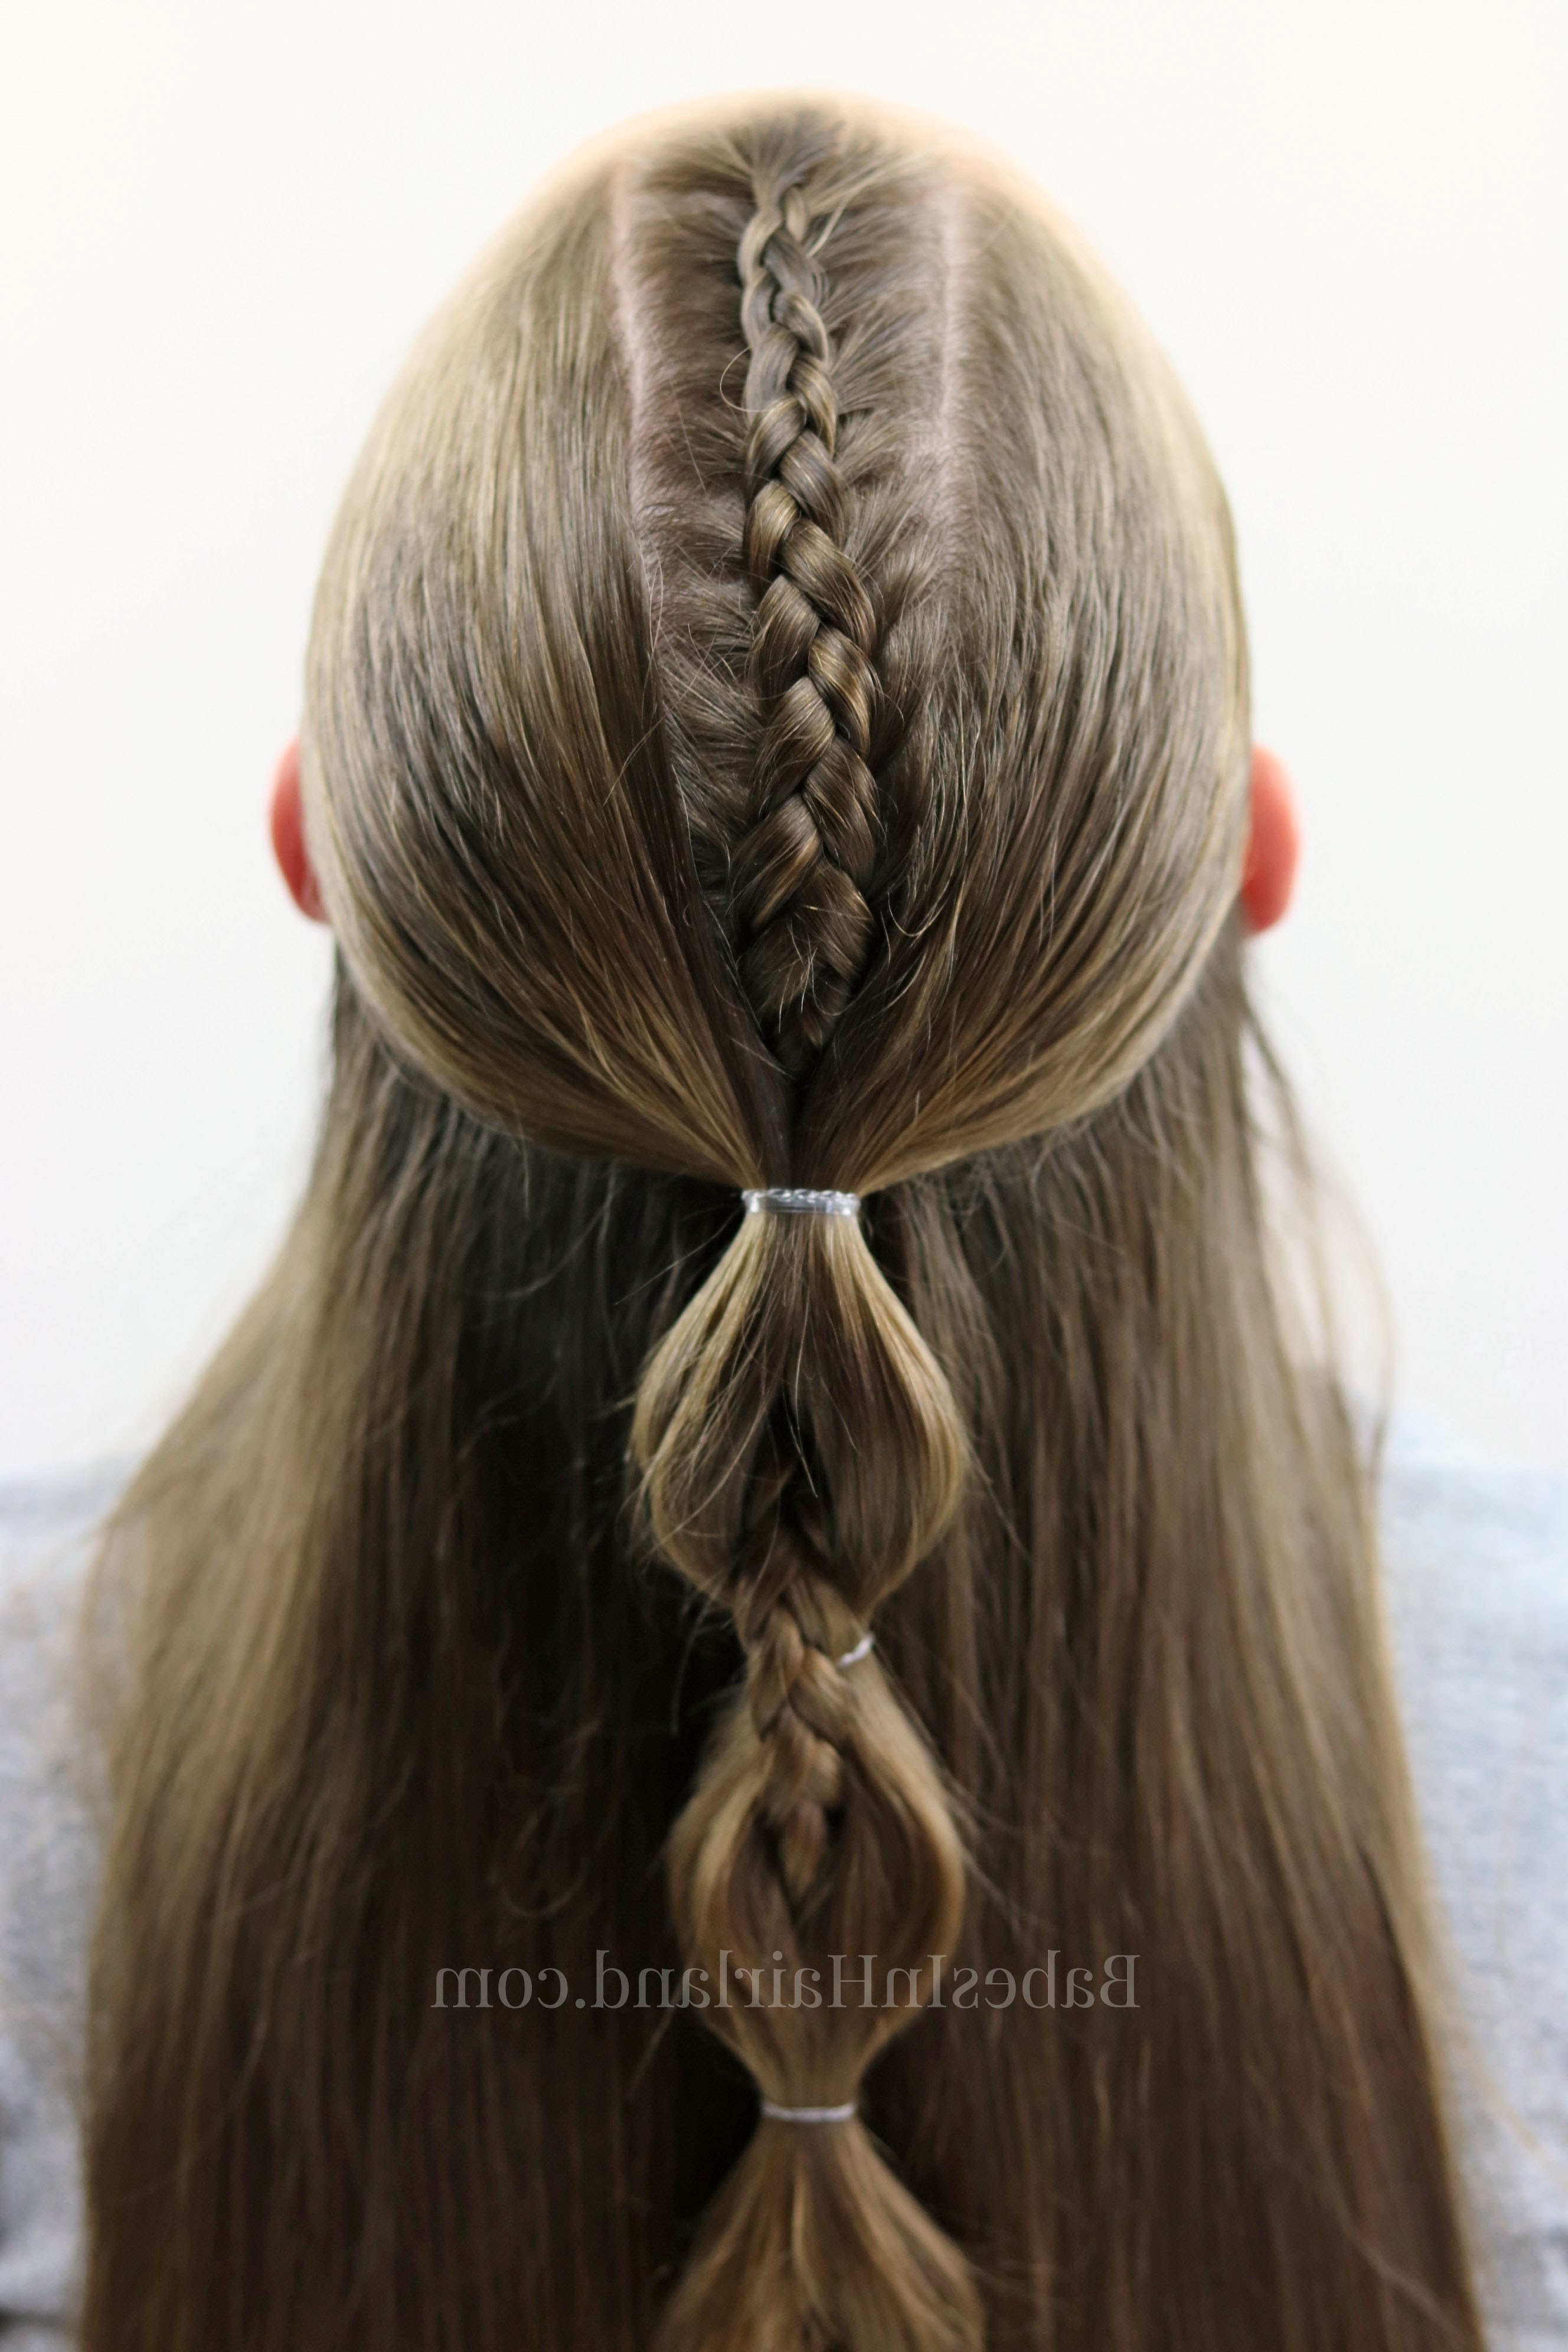 Peek A Boo French Braid Hairstyle For Teens, Tweens And Little Girls Regarding Most Current French Braid Ponytail Hairstyles With Bubbles (View 9 of 20)